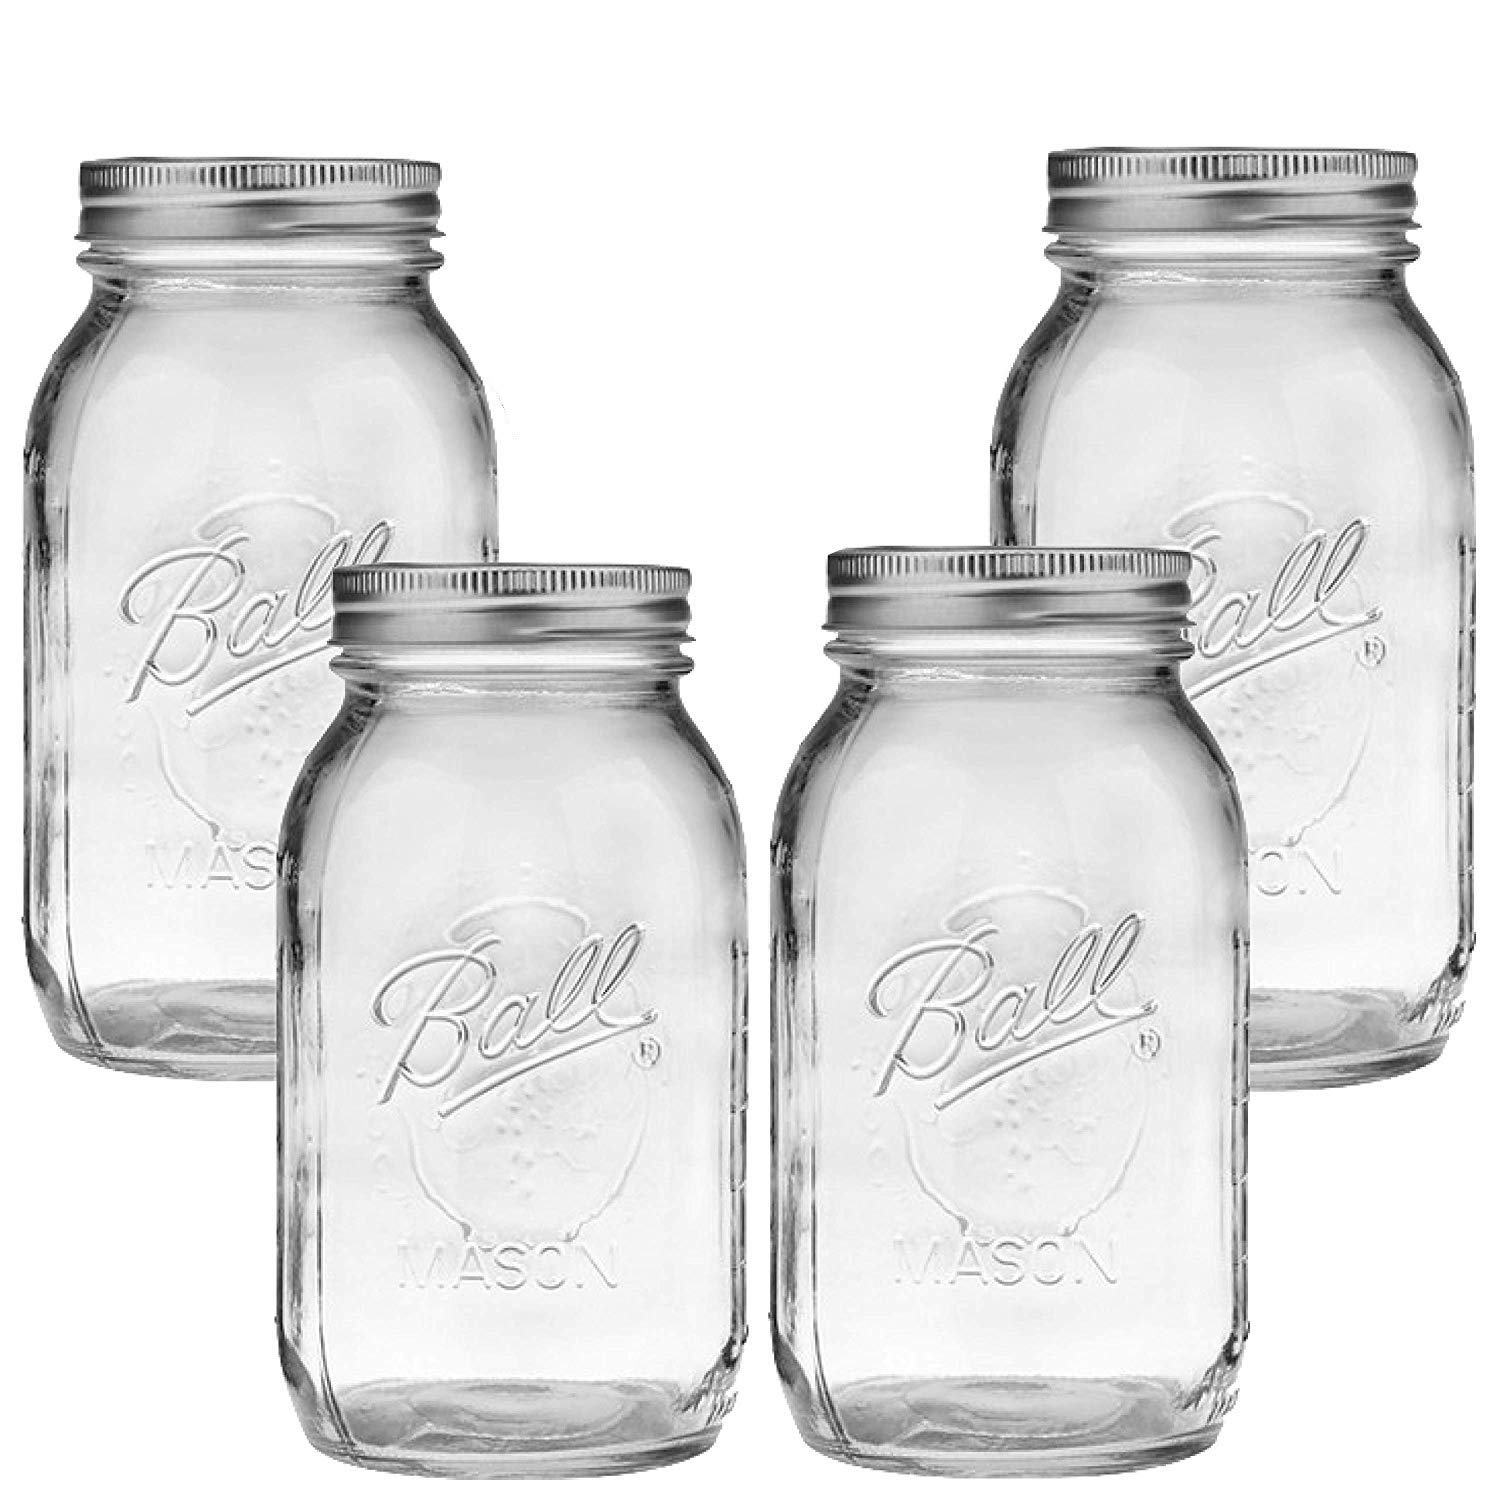 Ball Mason Jar-32 oz. Clear Glass Ball Collection Heritage Series-Set of 4 Jars by Ball